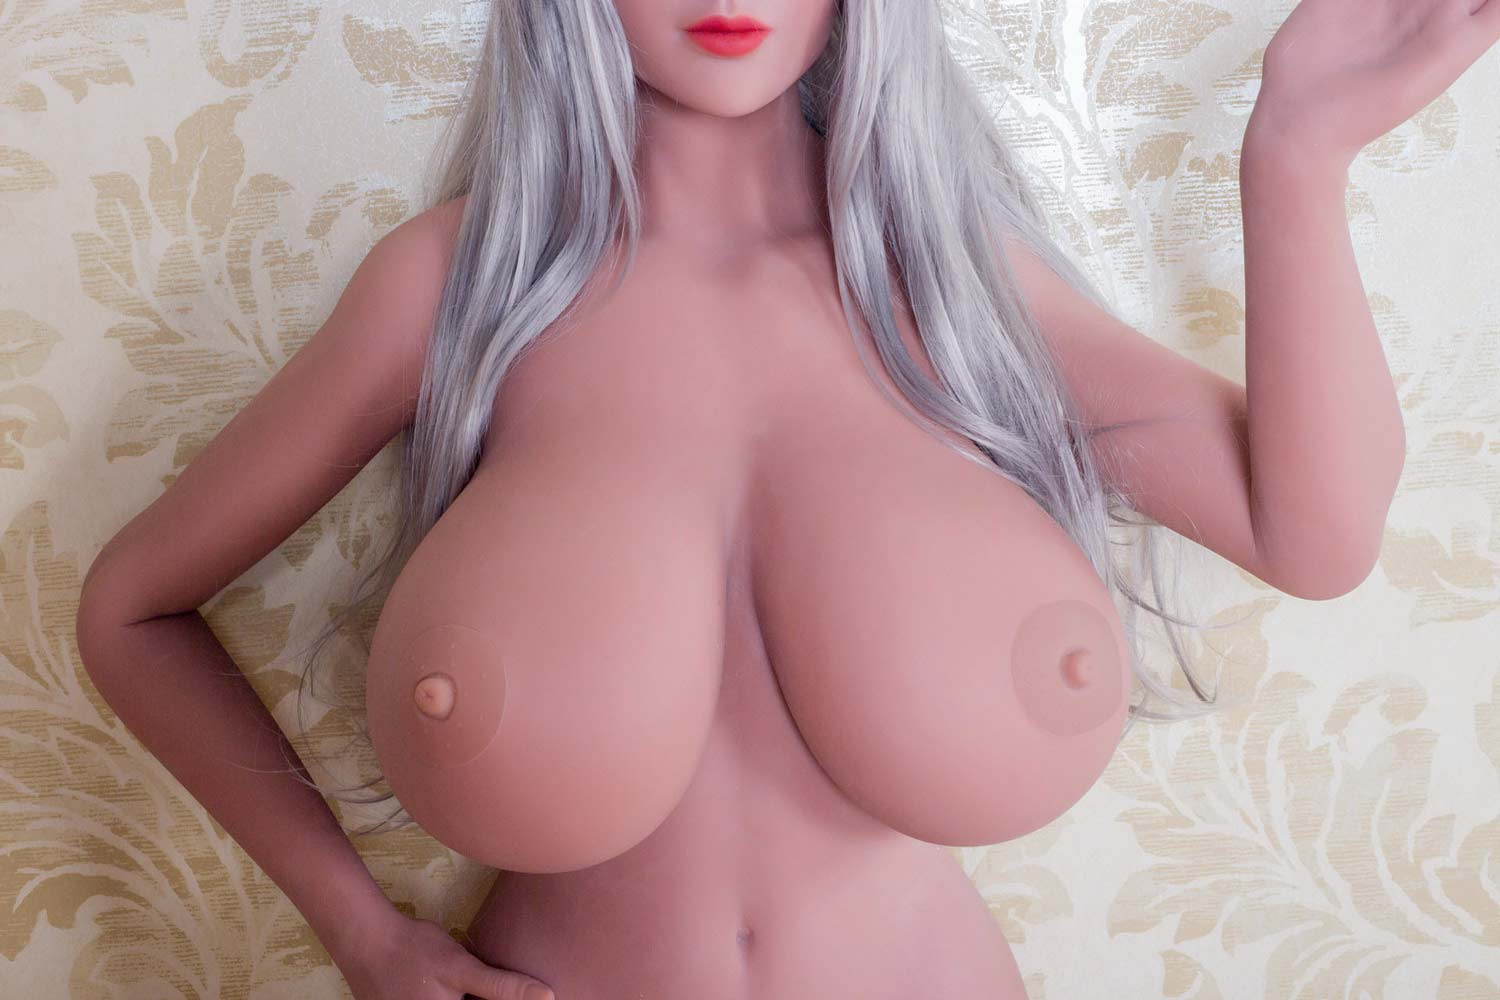 Sex doll with hands at waist